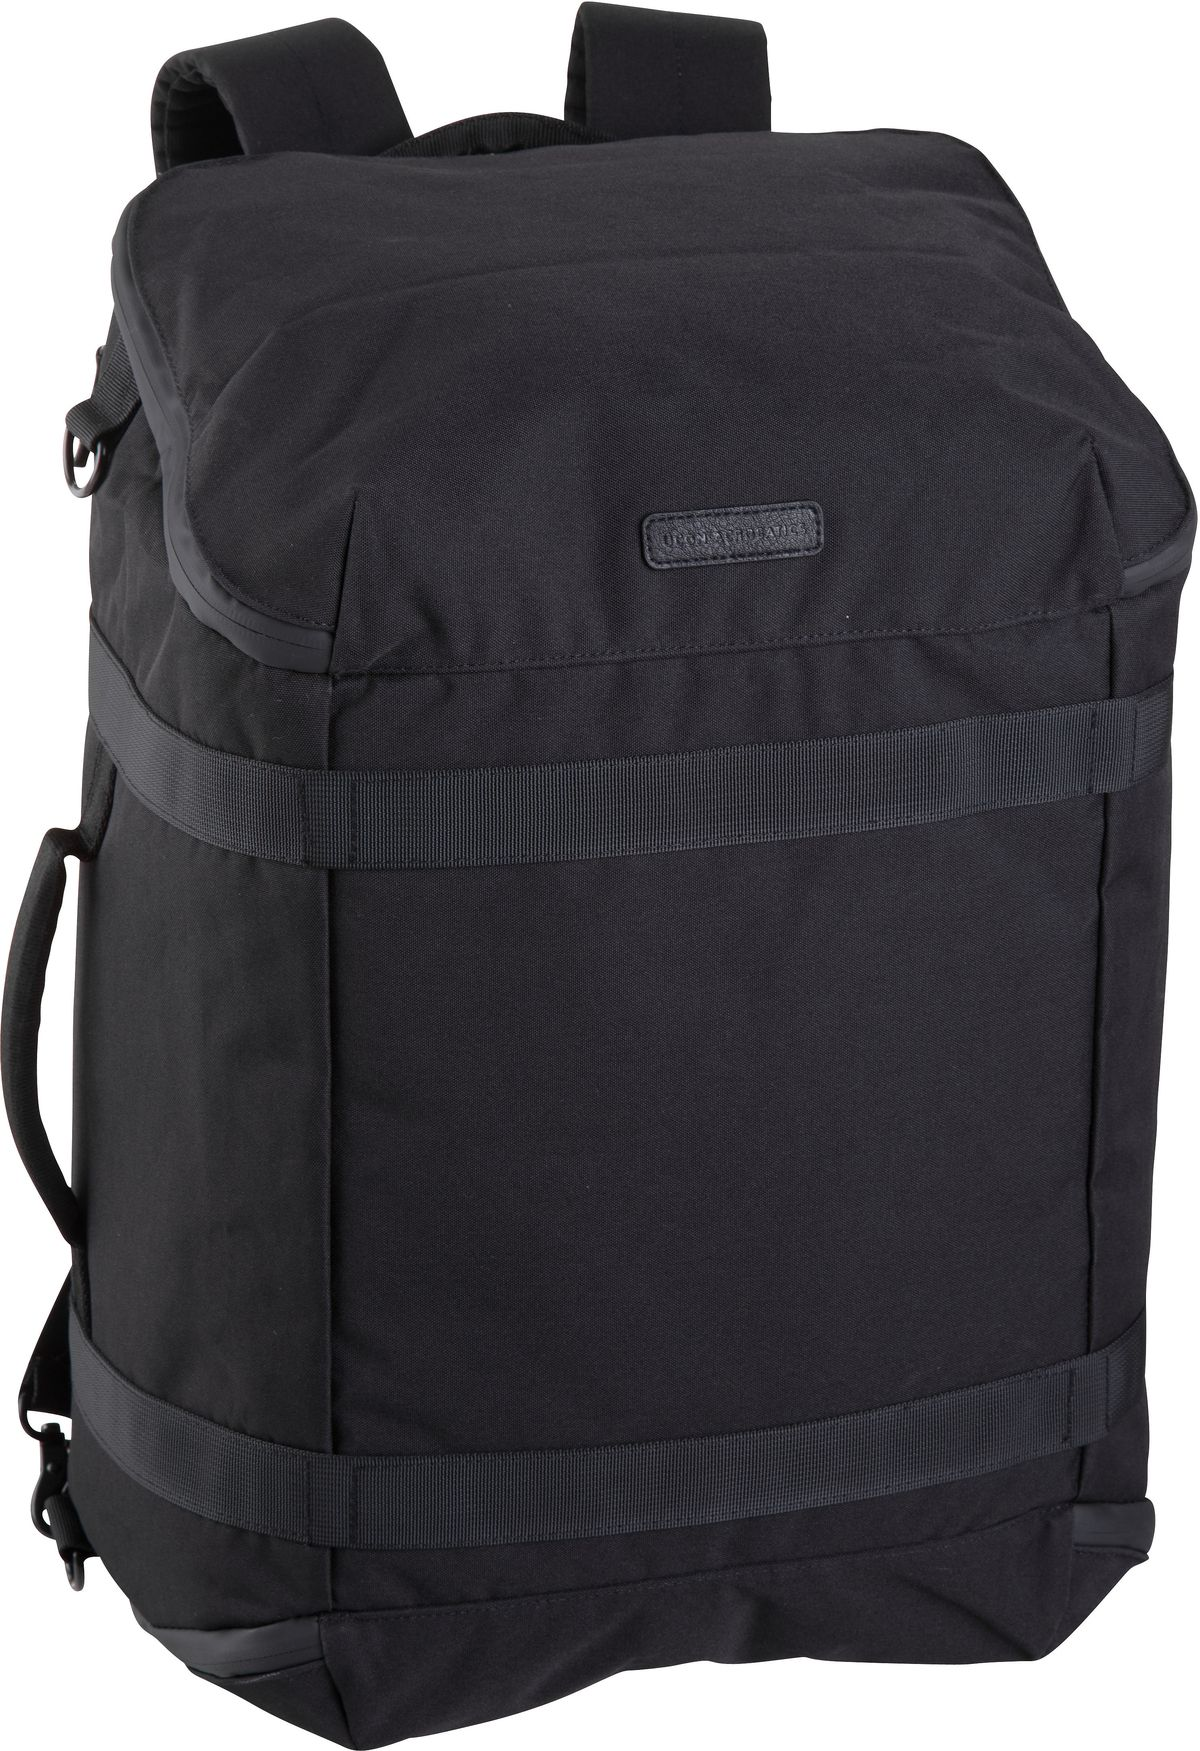 Rucksack / Daypack Stealth Arvid Backpack Black (33 Liter)